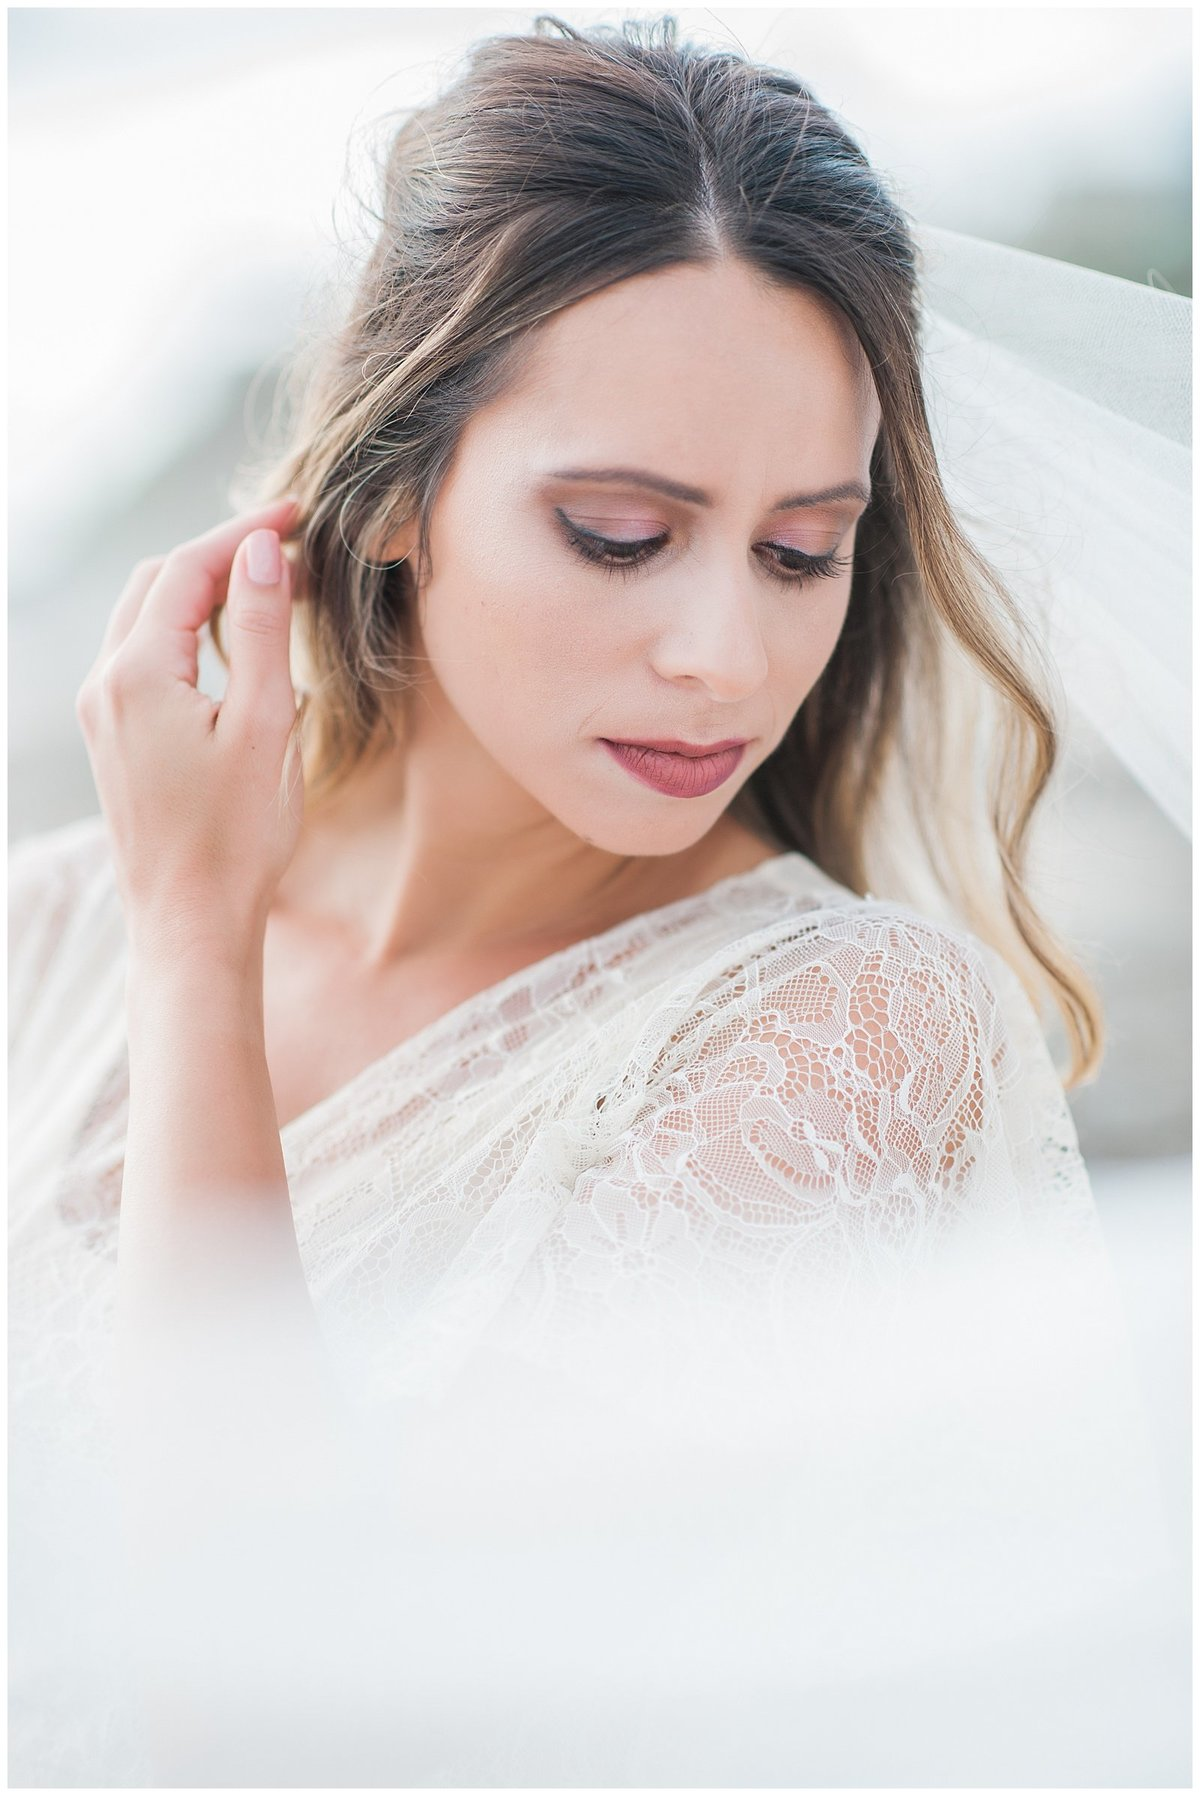 san clemente beach wedding elopement whimsical dreamy soft light socal photo021